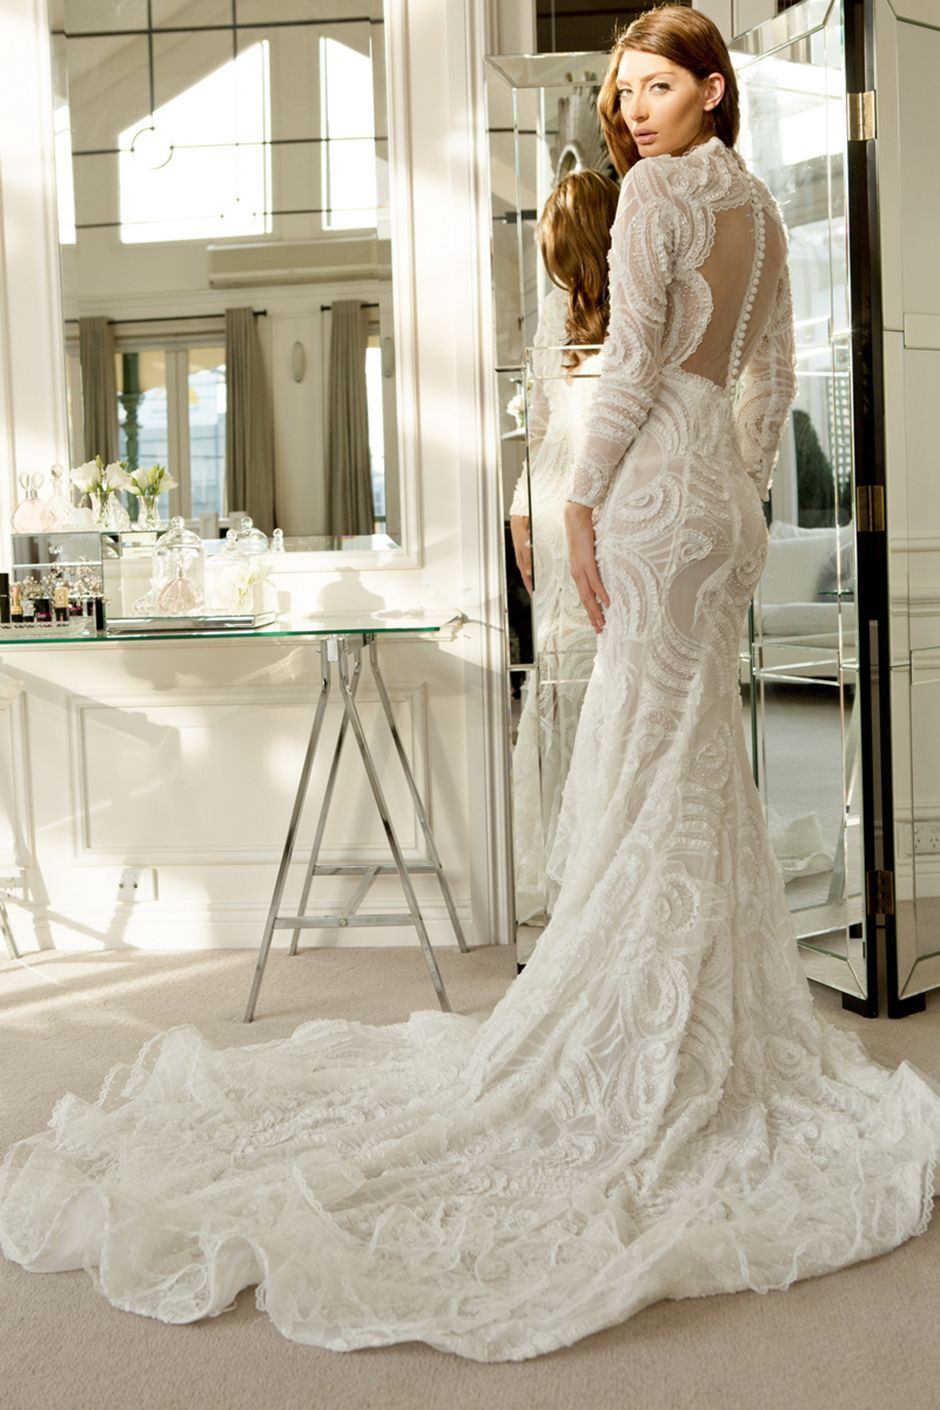 Couture gowns that wow: Steven Khalil - Fashionising.com | Bridal ...